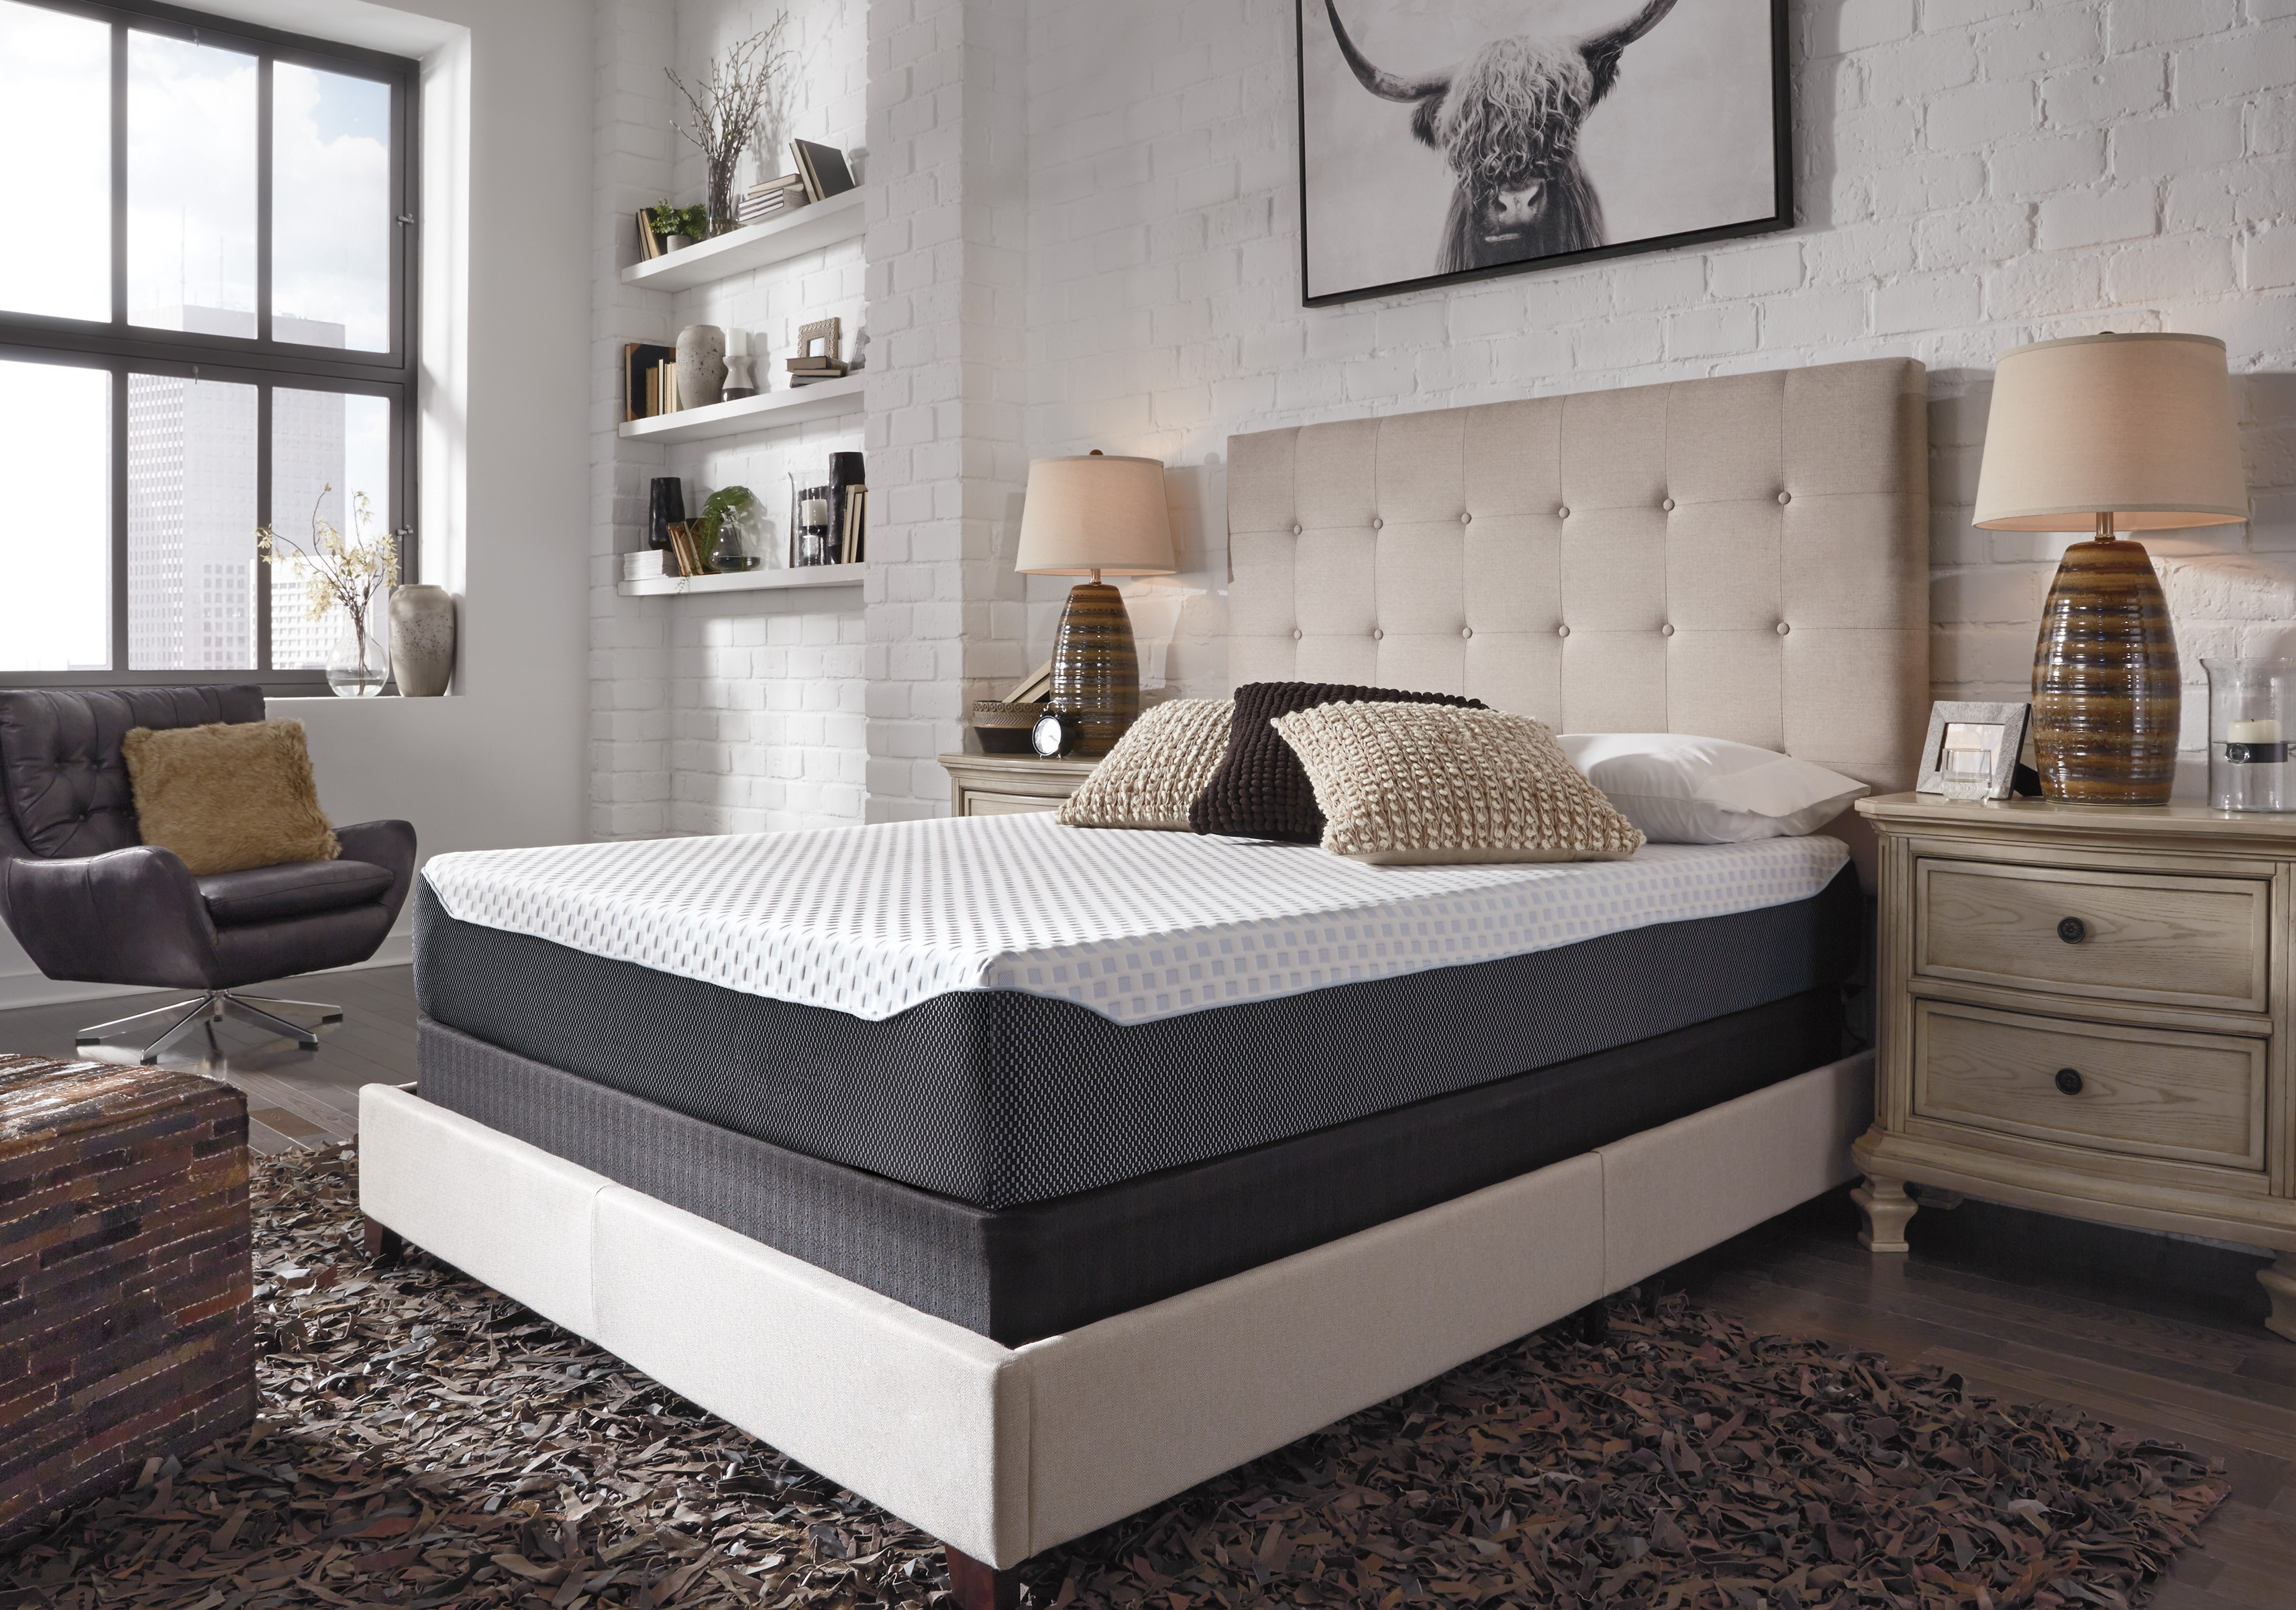 Best Twin Mattress Reviews and Buying Guide by www.snoremagazine.com